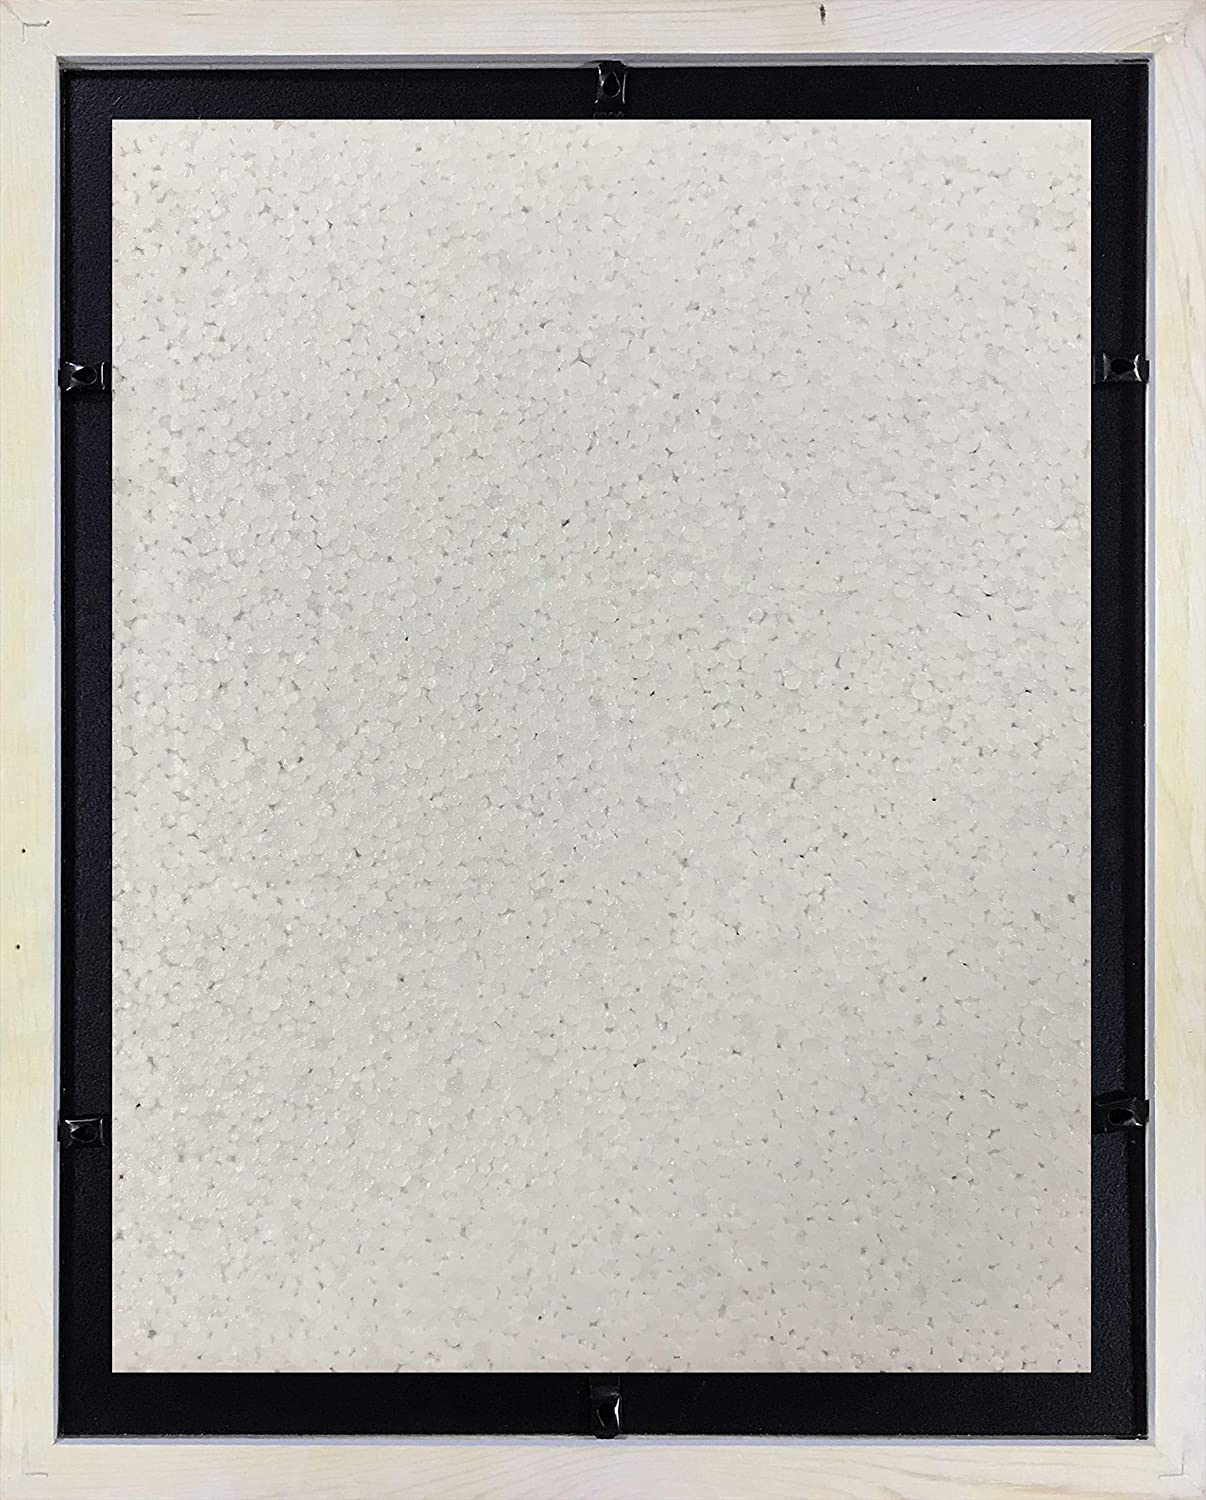 """1001.02-1620-HF-WF-16X20-WO-11X14 100/% Tempered Glass Studio 500 Inc White Frames Come with 1pc Ivory White Beveled Matt Board for 11/""""x14/"""" Picture Opening Studio 500-2 Pack Set of 16 by 20-inch 100/% Real Wood Photo Frames"""